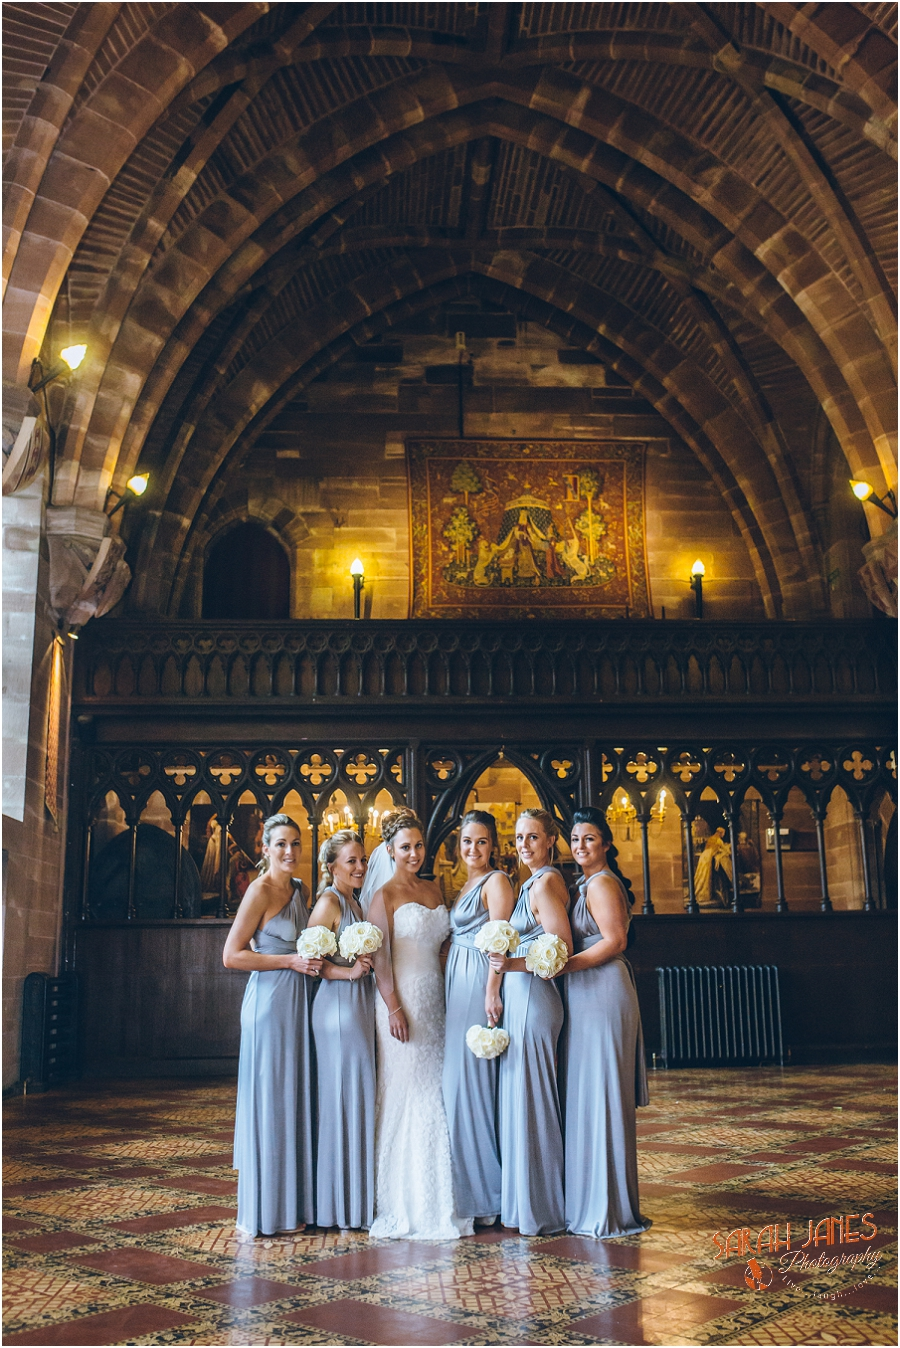 Sarah Janes Photography, Wedding photography Chester, Wedding photographer Chester, Wedding photography at Peckforton Castle_0037.jpg